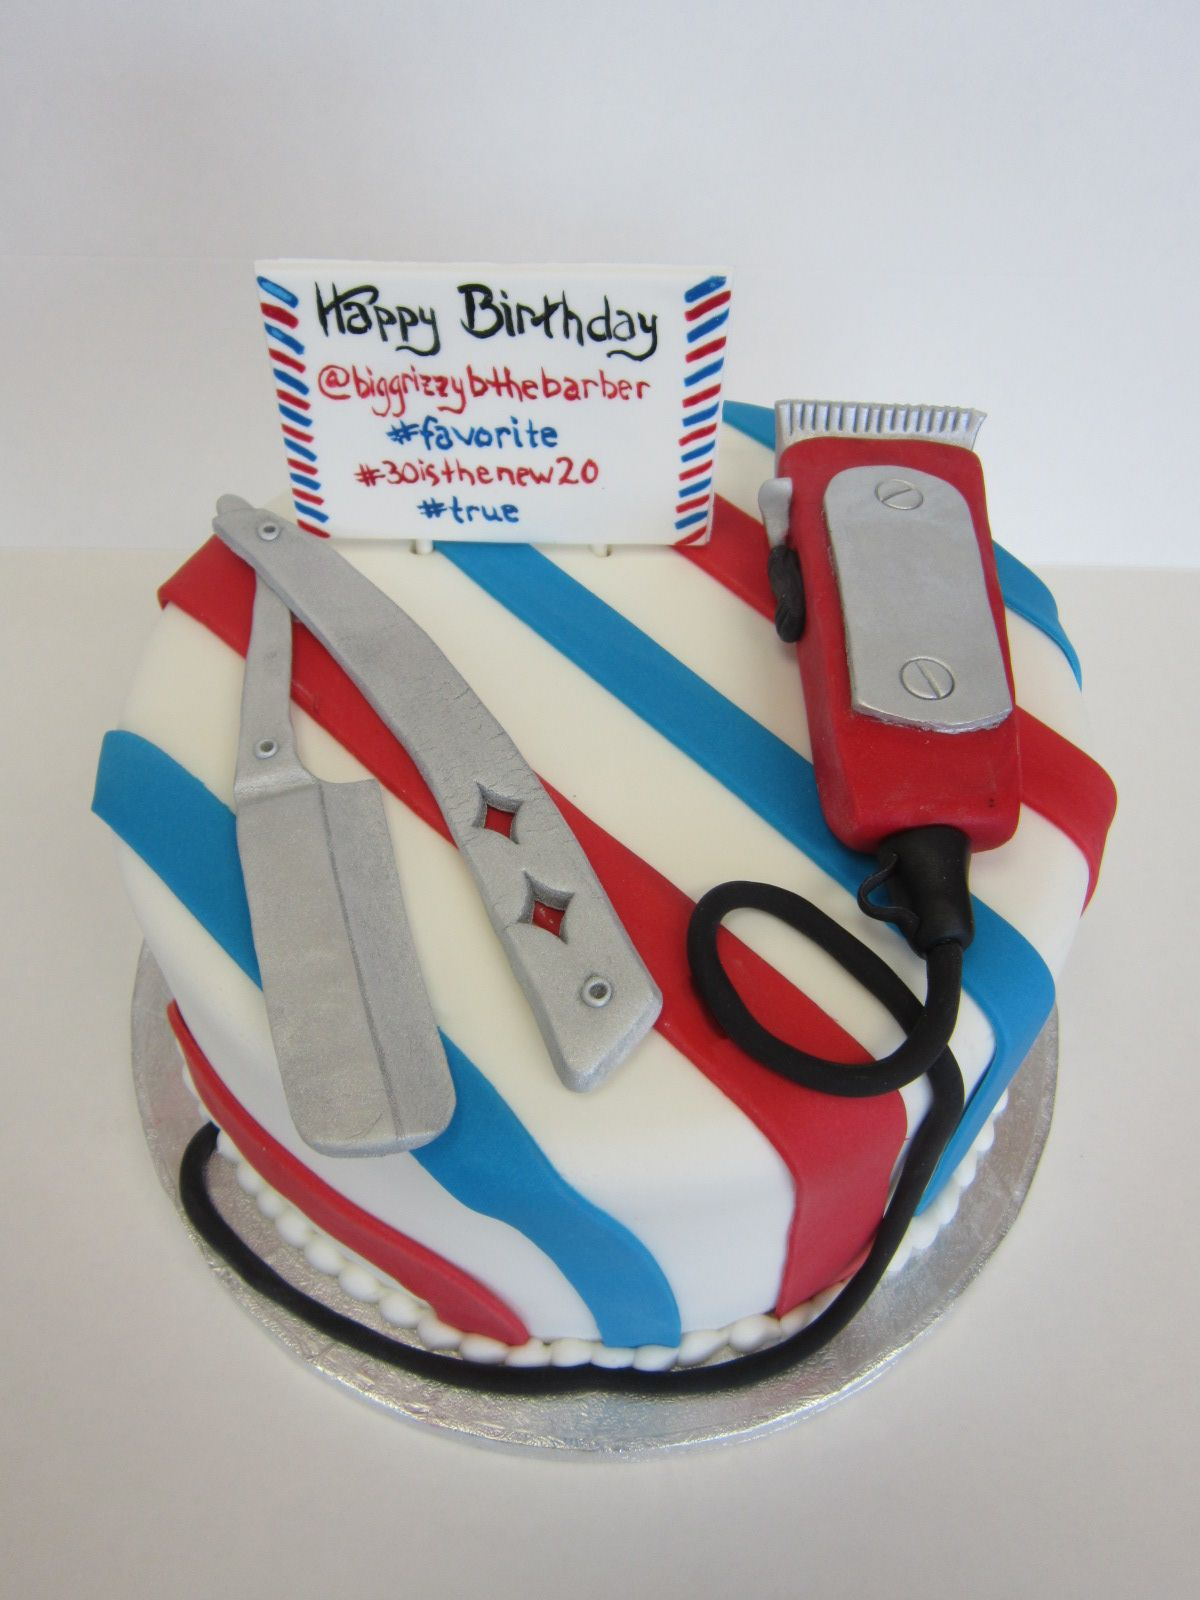 What do you give a barber for his birthday? Well a cake with all the trimmings off course! This cake is fondant covered with the red and blue barber stripes. Razor, trimmer and biz card are also edible fondant creations. This cake made by www.americandreamcakes.com (Recreation of idea from Pinterest brought in by client)